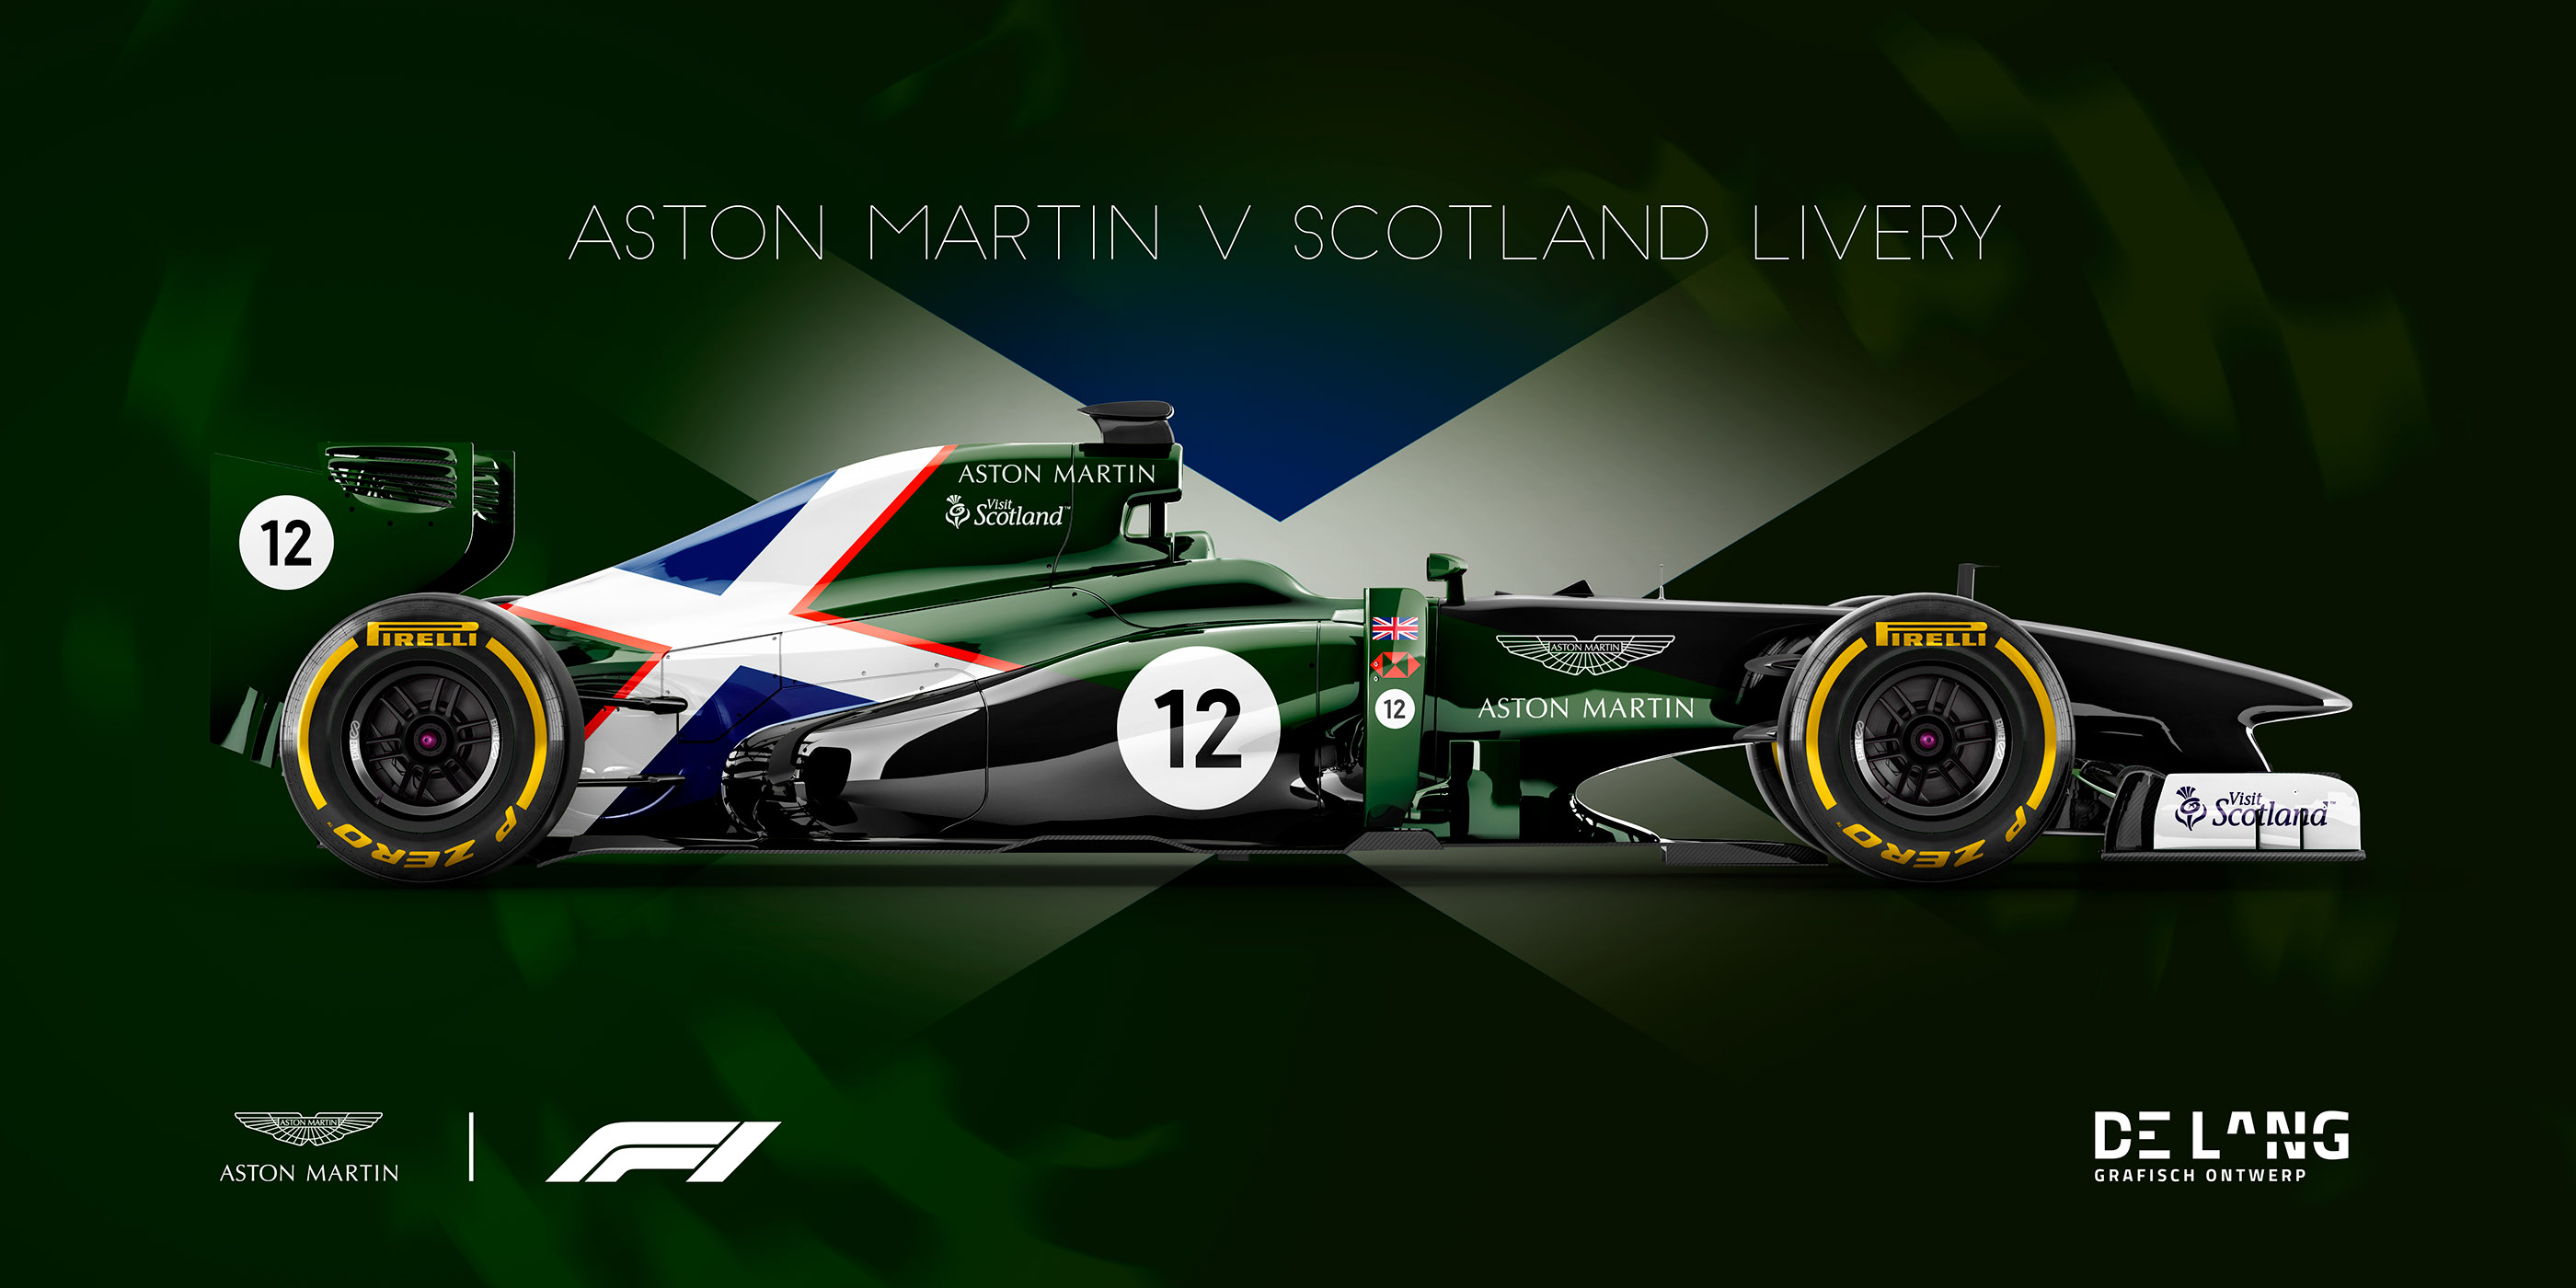 F1 Livery Concept 2 Aston Martin F1 Team On Behance